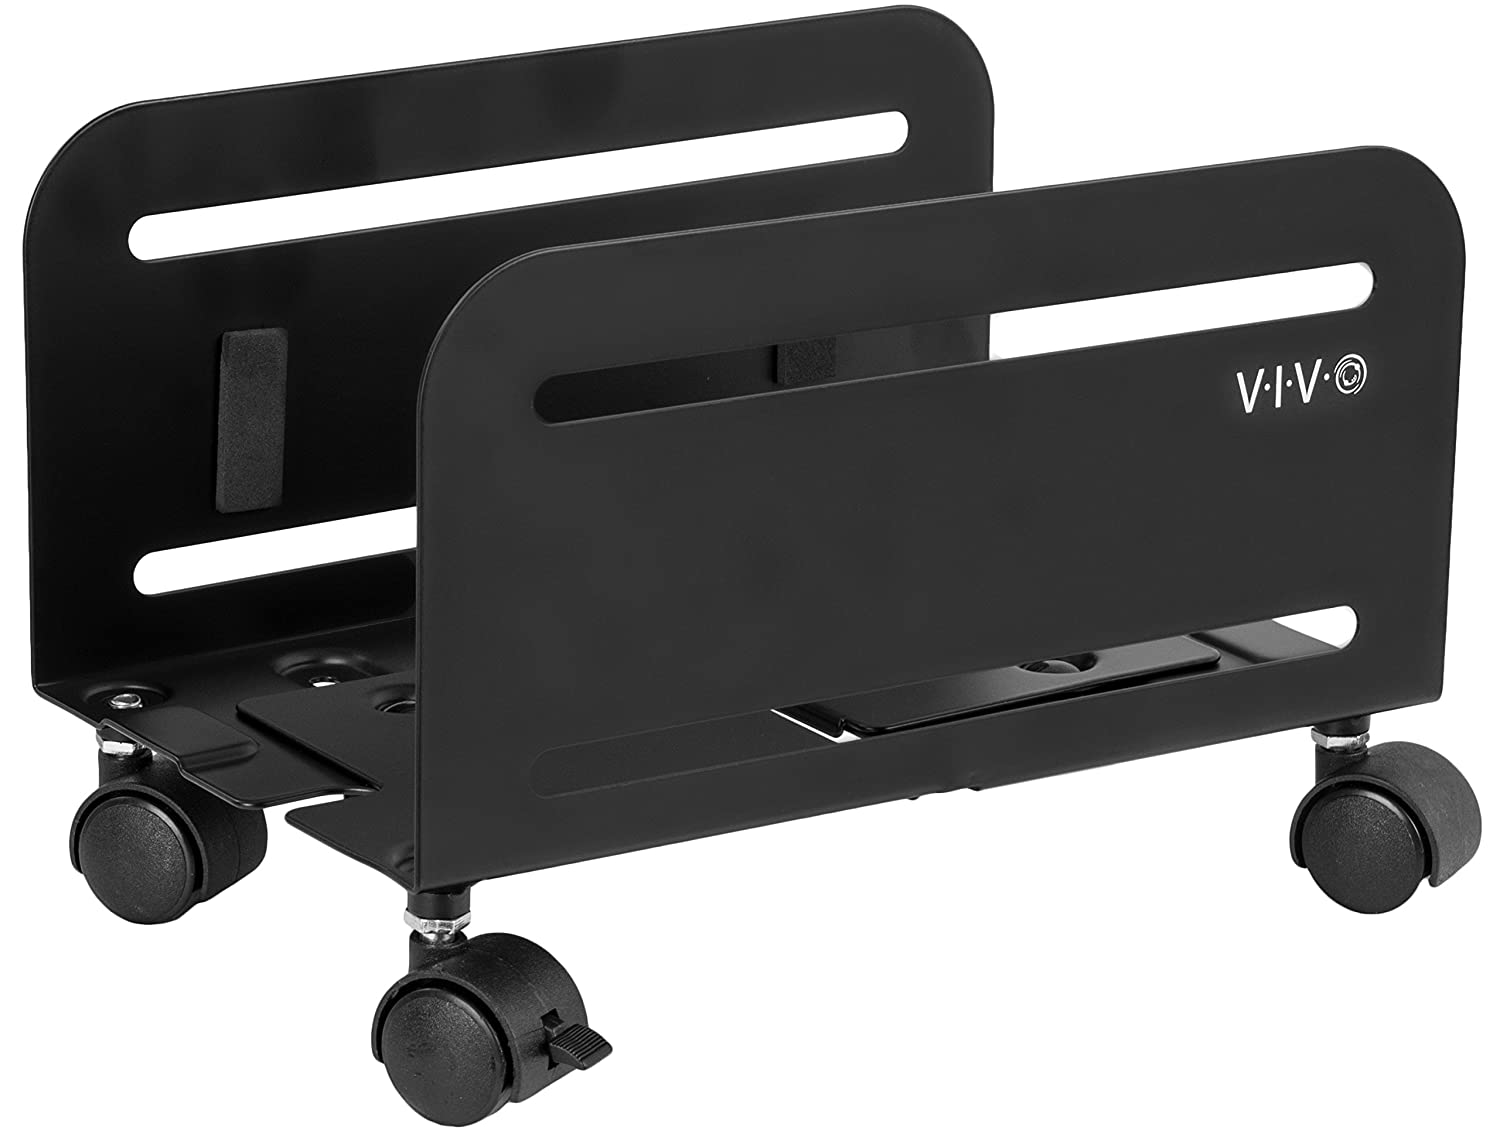 VIVO Black Computer Desktop ATX Case CPU Steel Rolling Stand Adjustable Mobile Cart Holder Locking Wheels (CART-PC01)